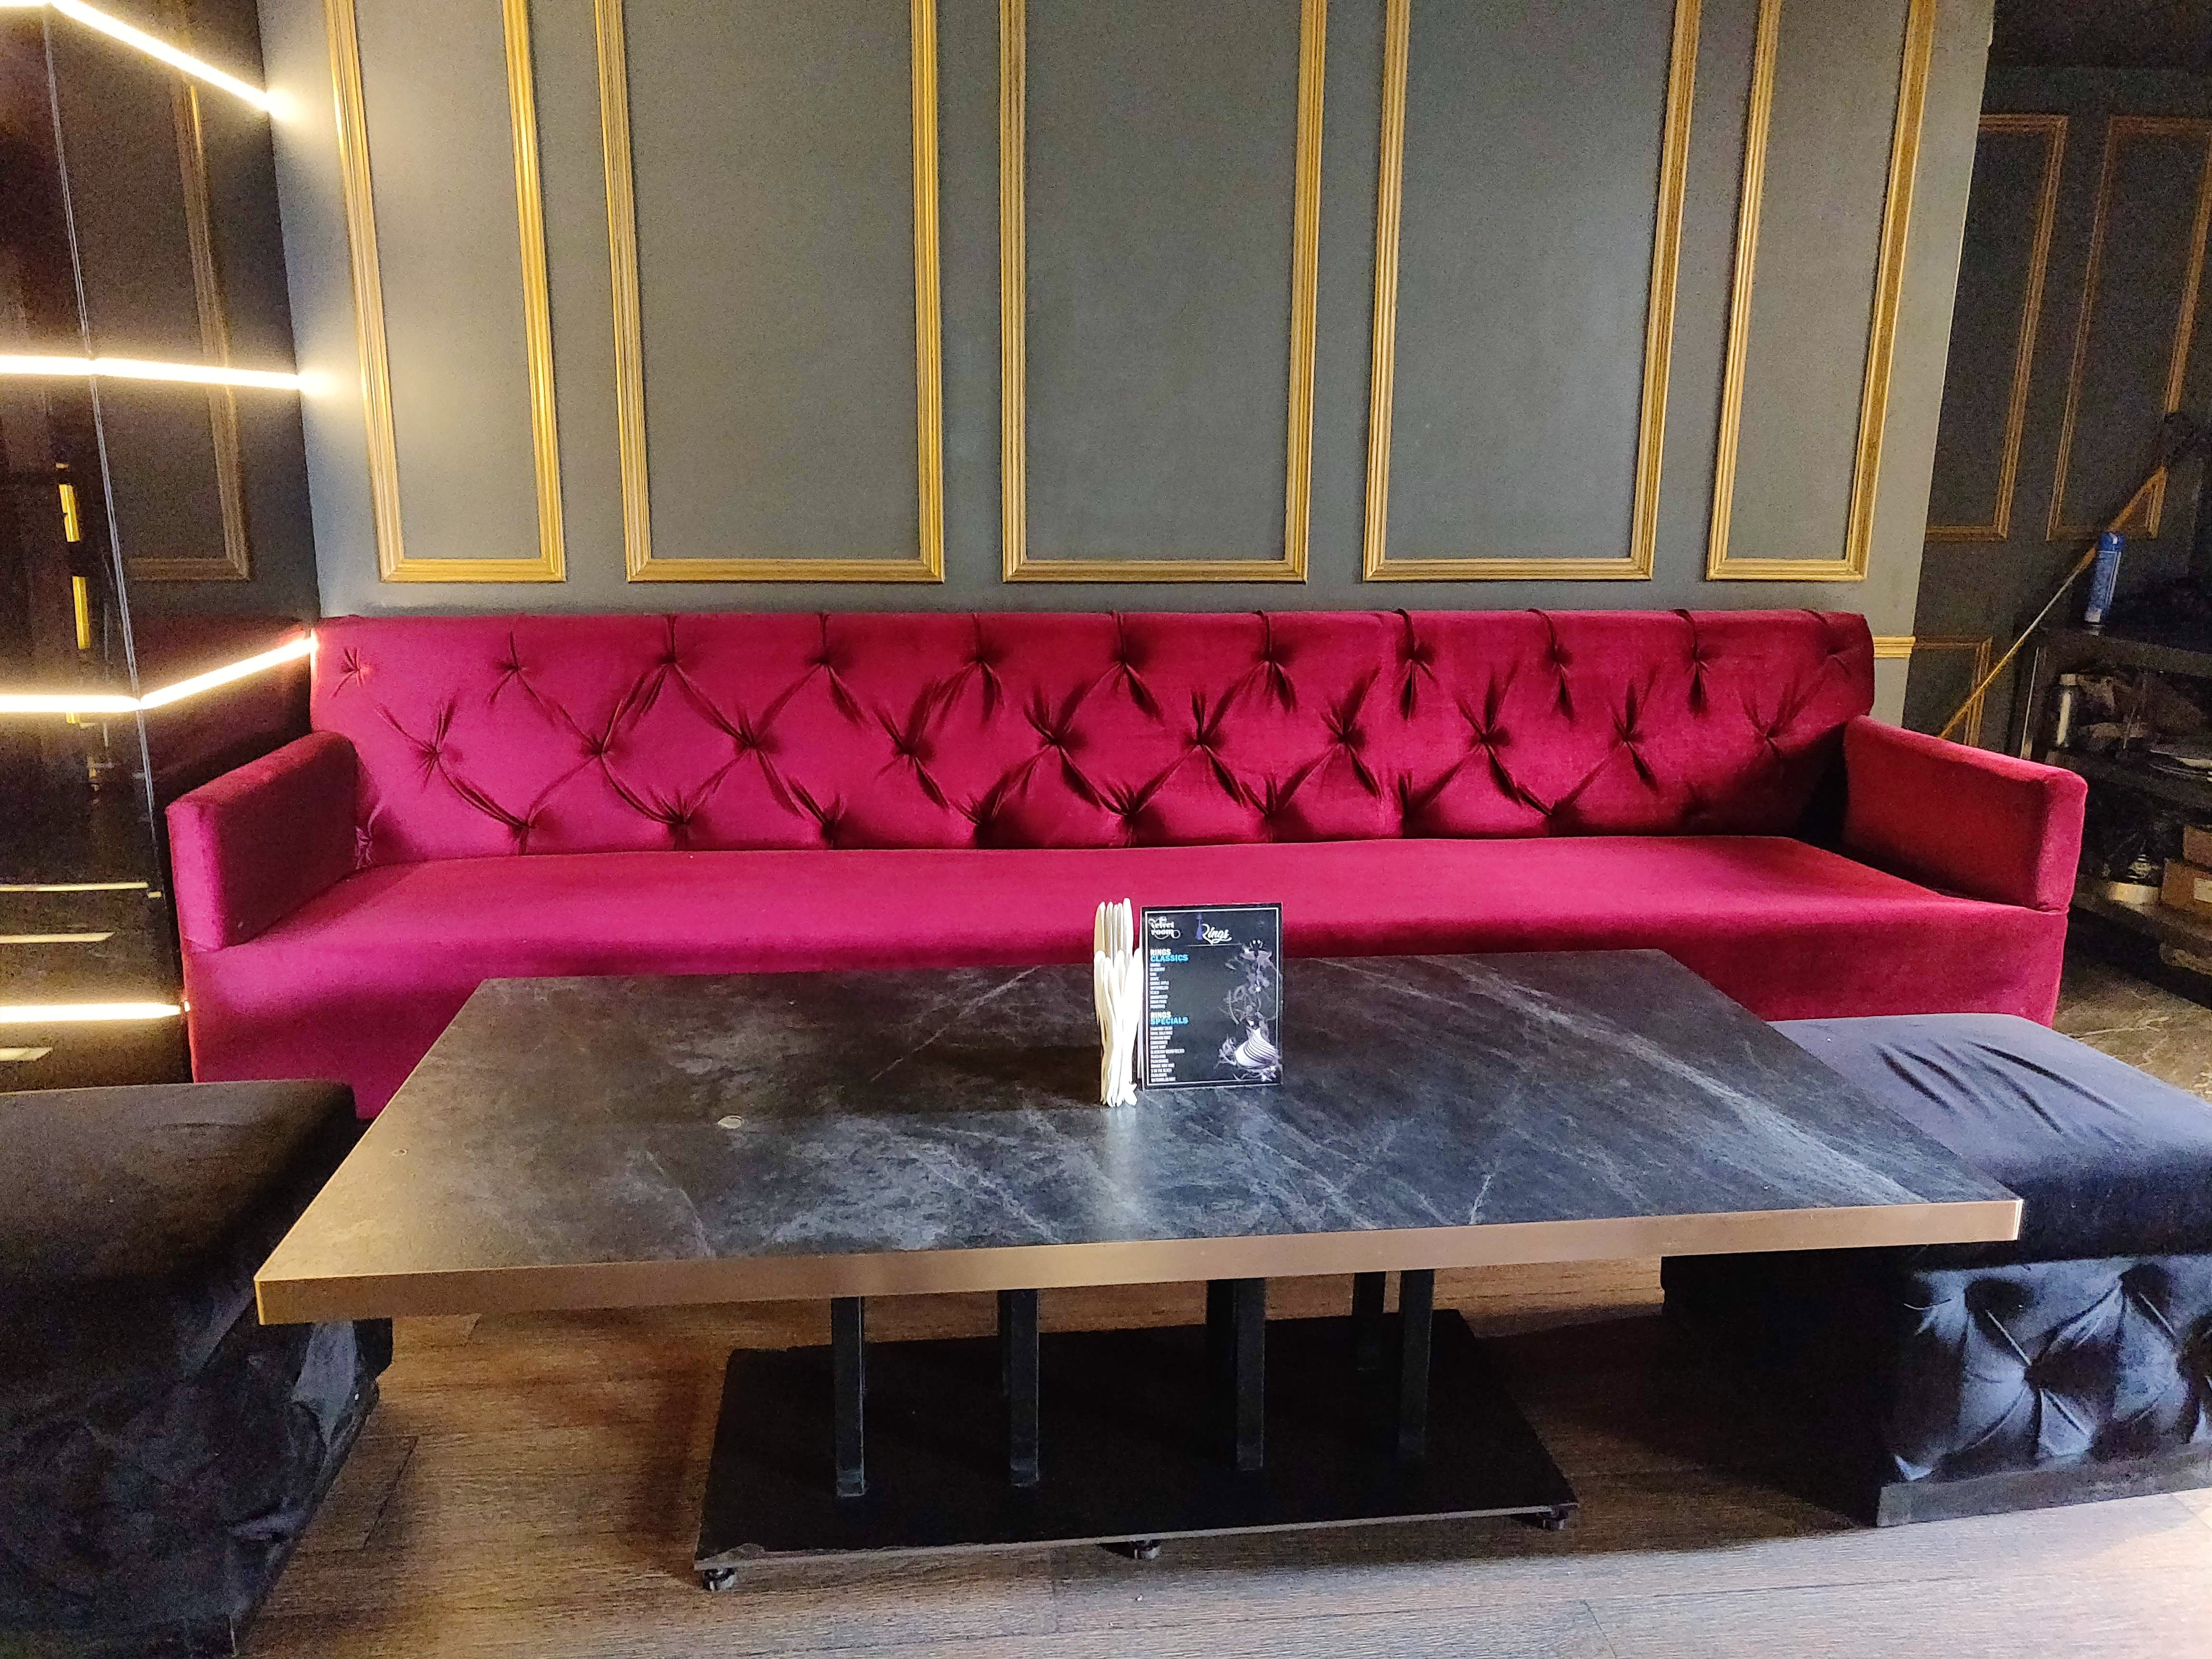 Furniture,Couch,Room,Red,Pink,Table,Living room,Interior design,Purple,Coffee table